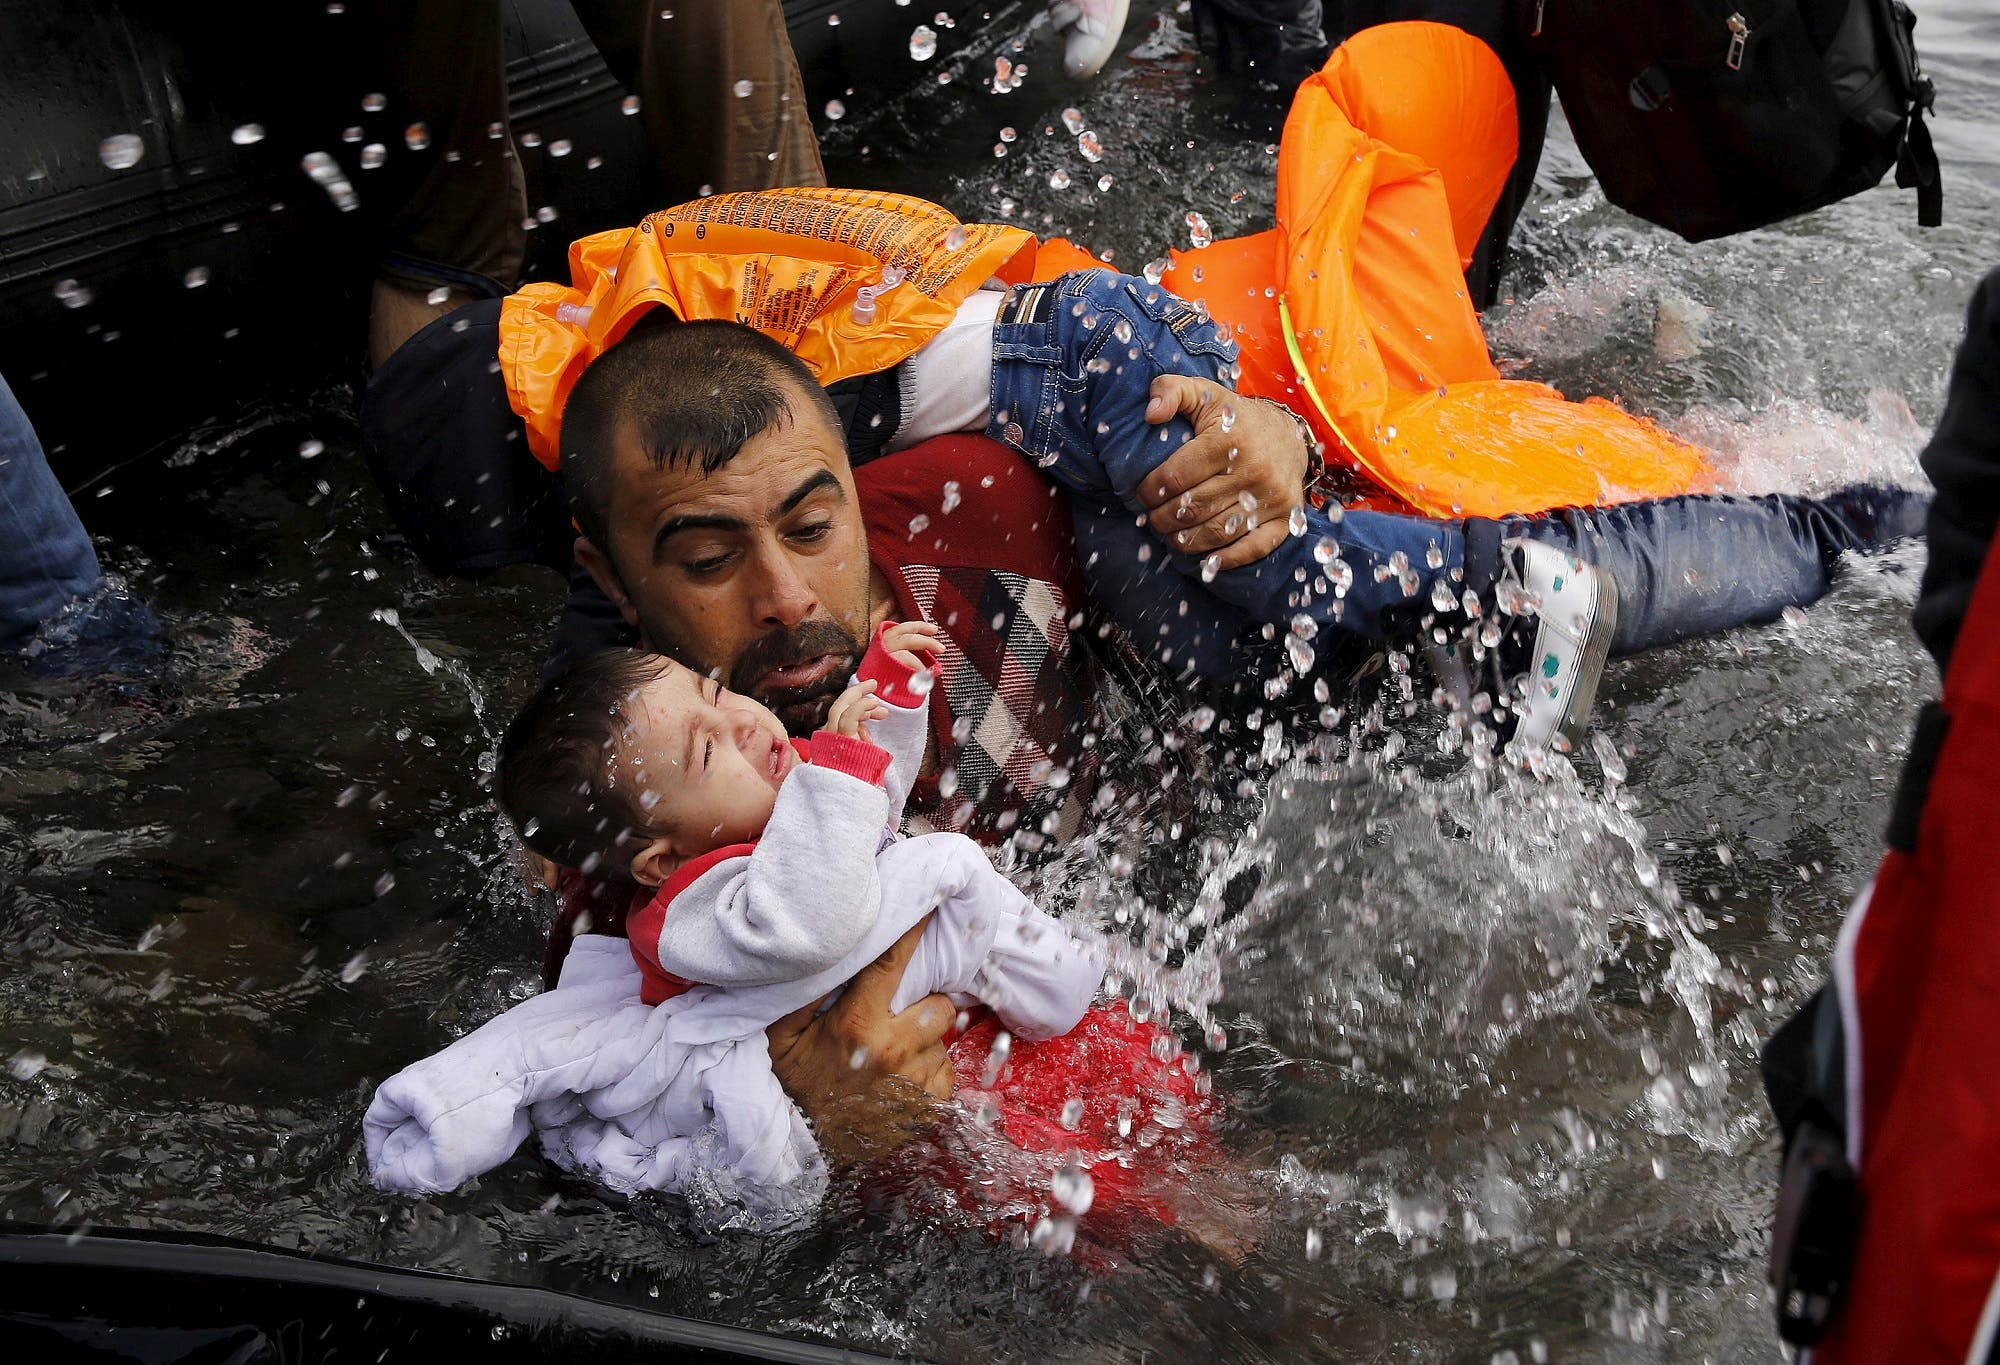 A Syrian refugee holds onto his children as he struggles to walk off a dinghy on the Greek island of Lesbos, on September 24, 2015. (Reuters/ Yannis Behrakis)